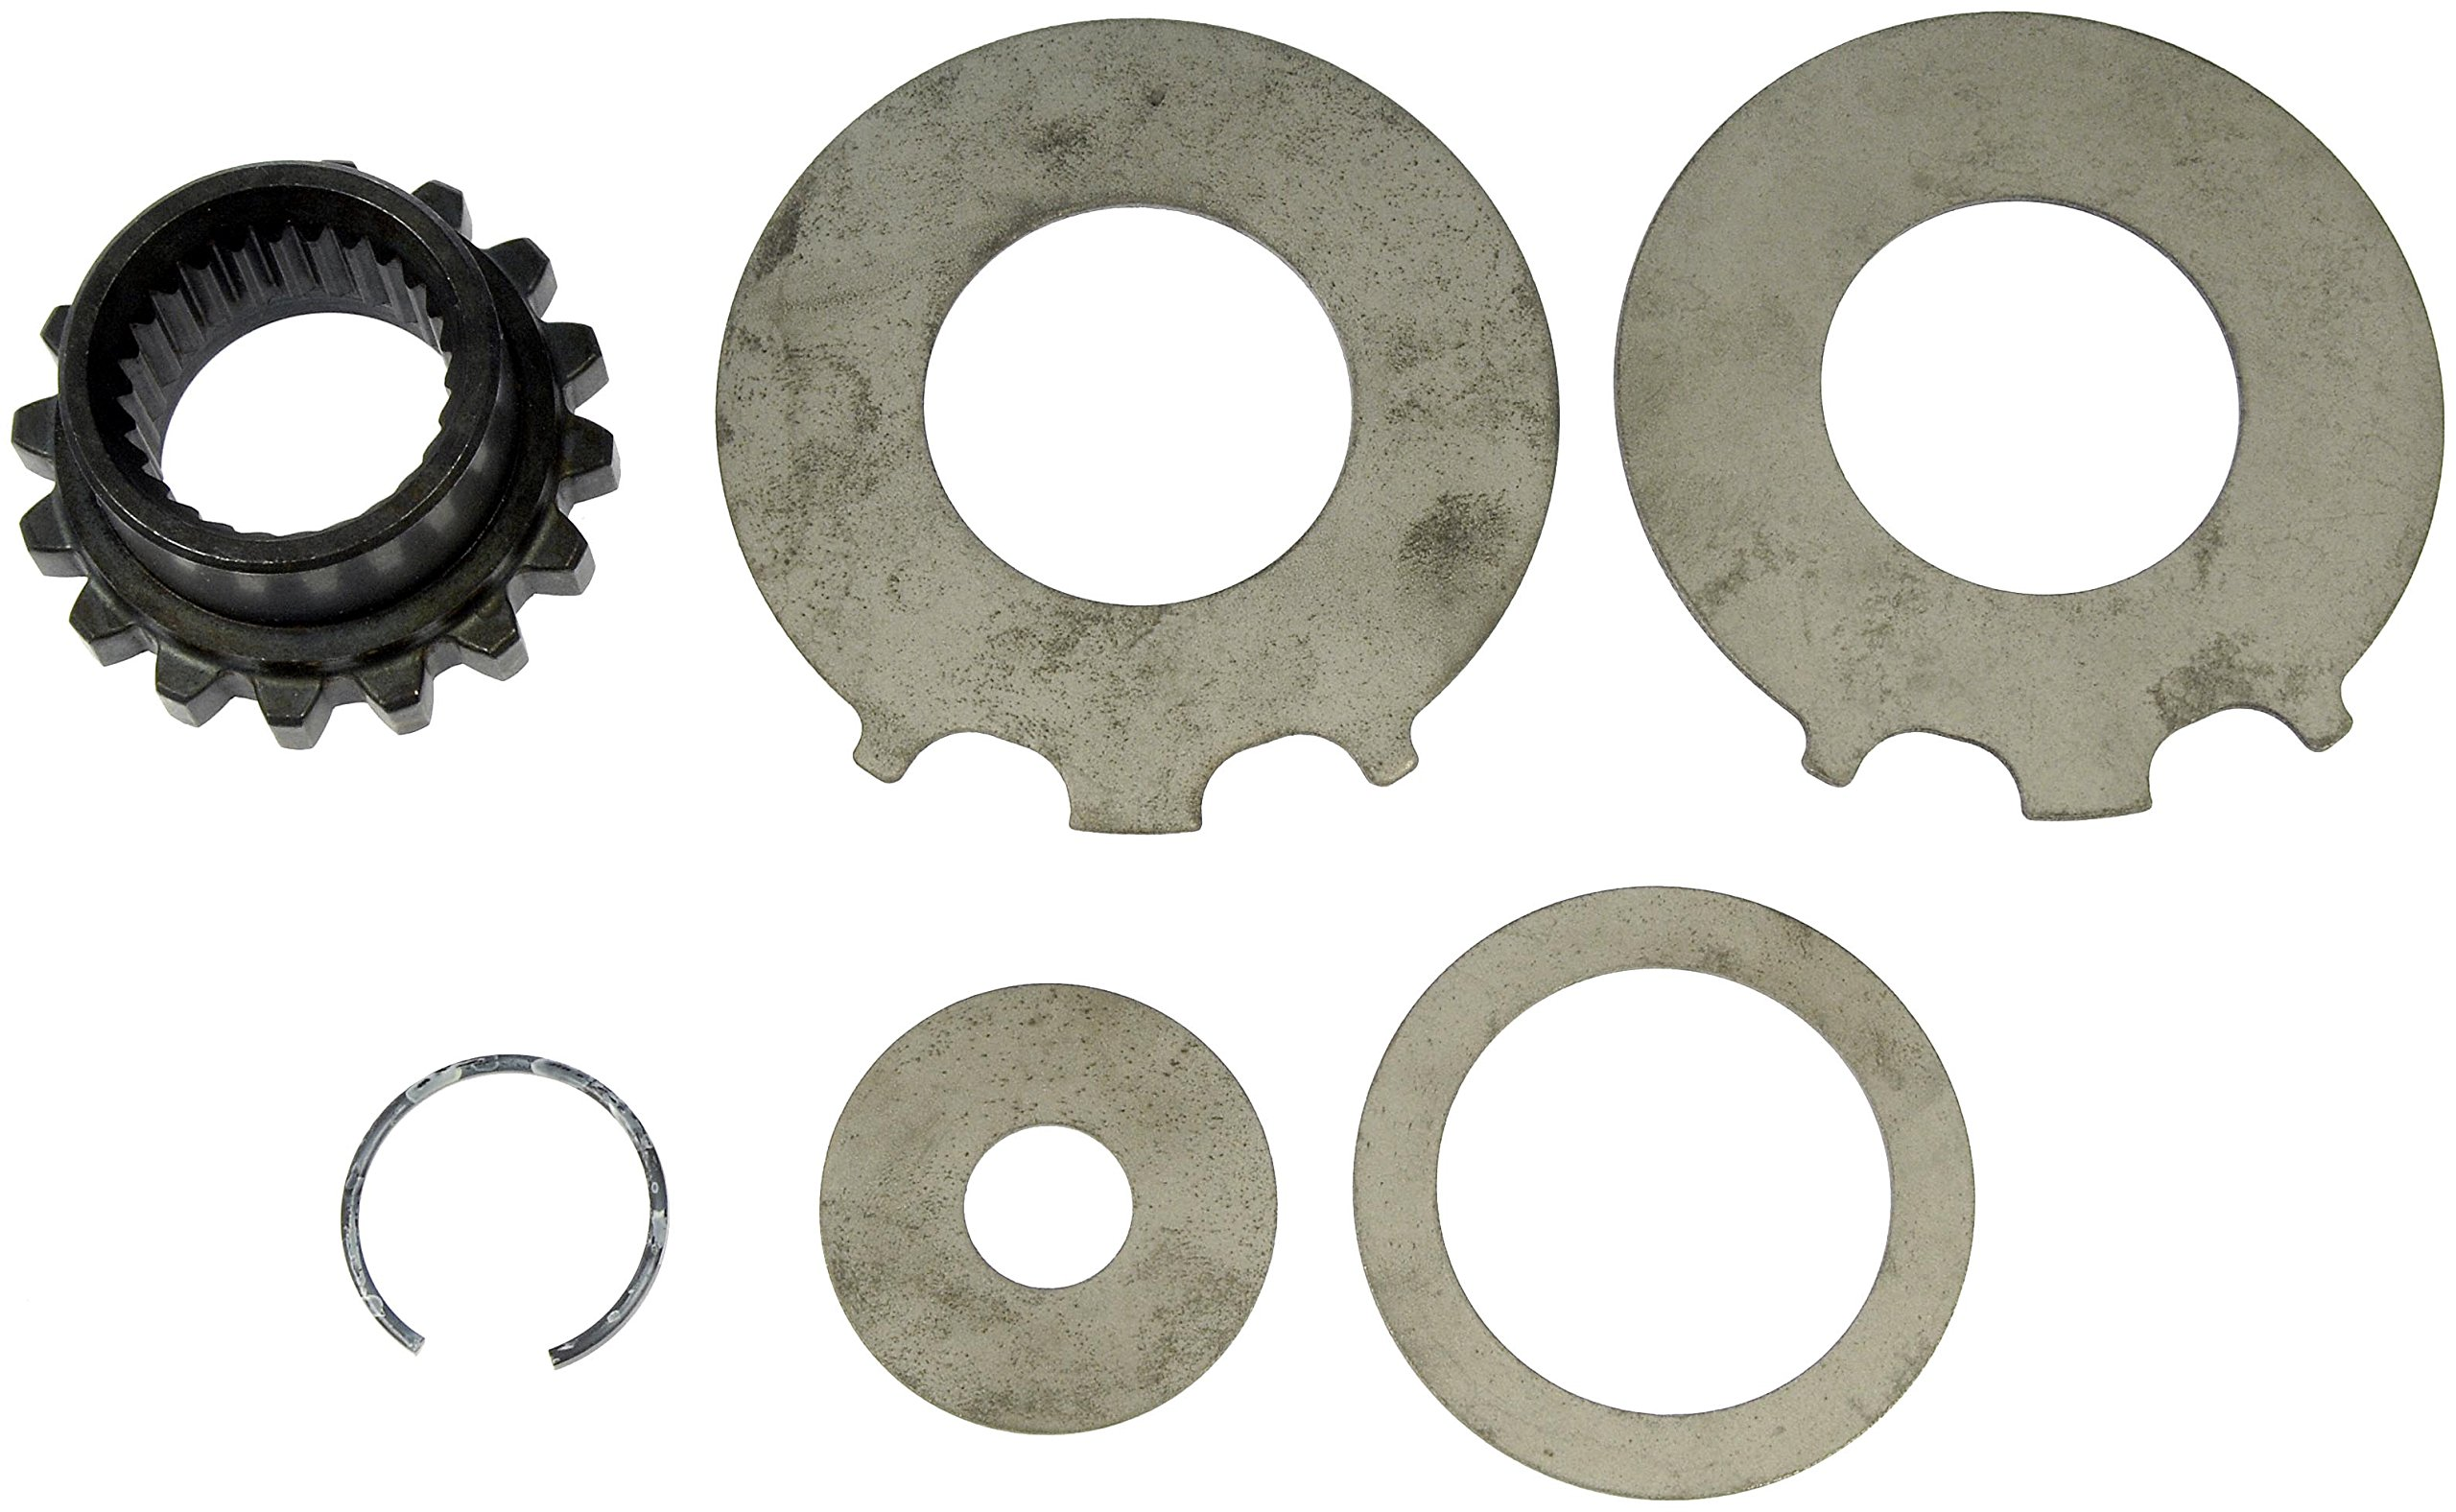 Dorman 600-561 Differential Carrier Gear Repair Kit by Dorman